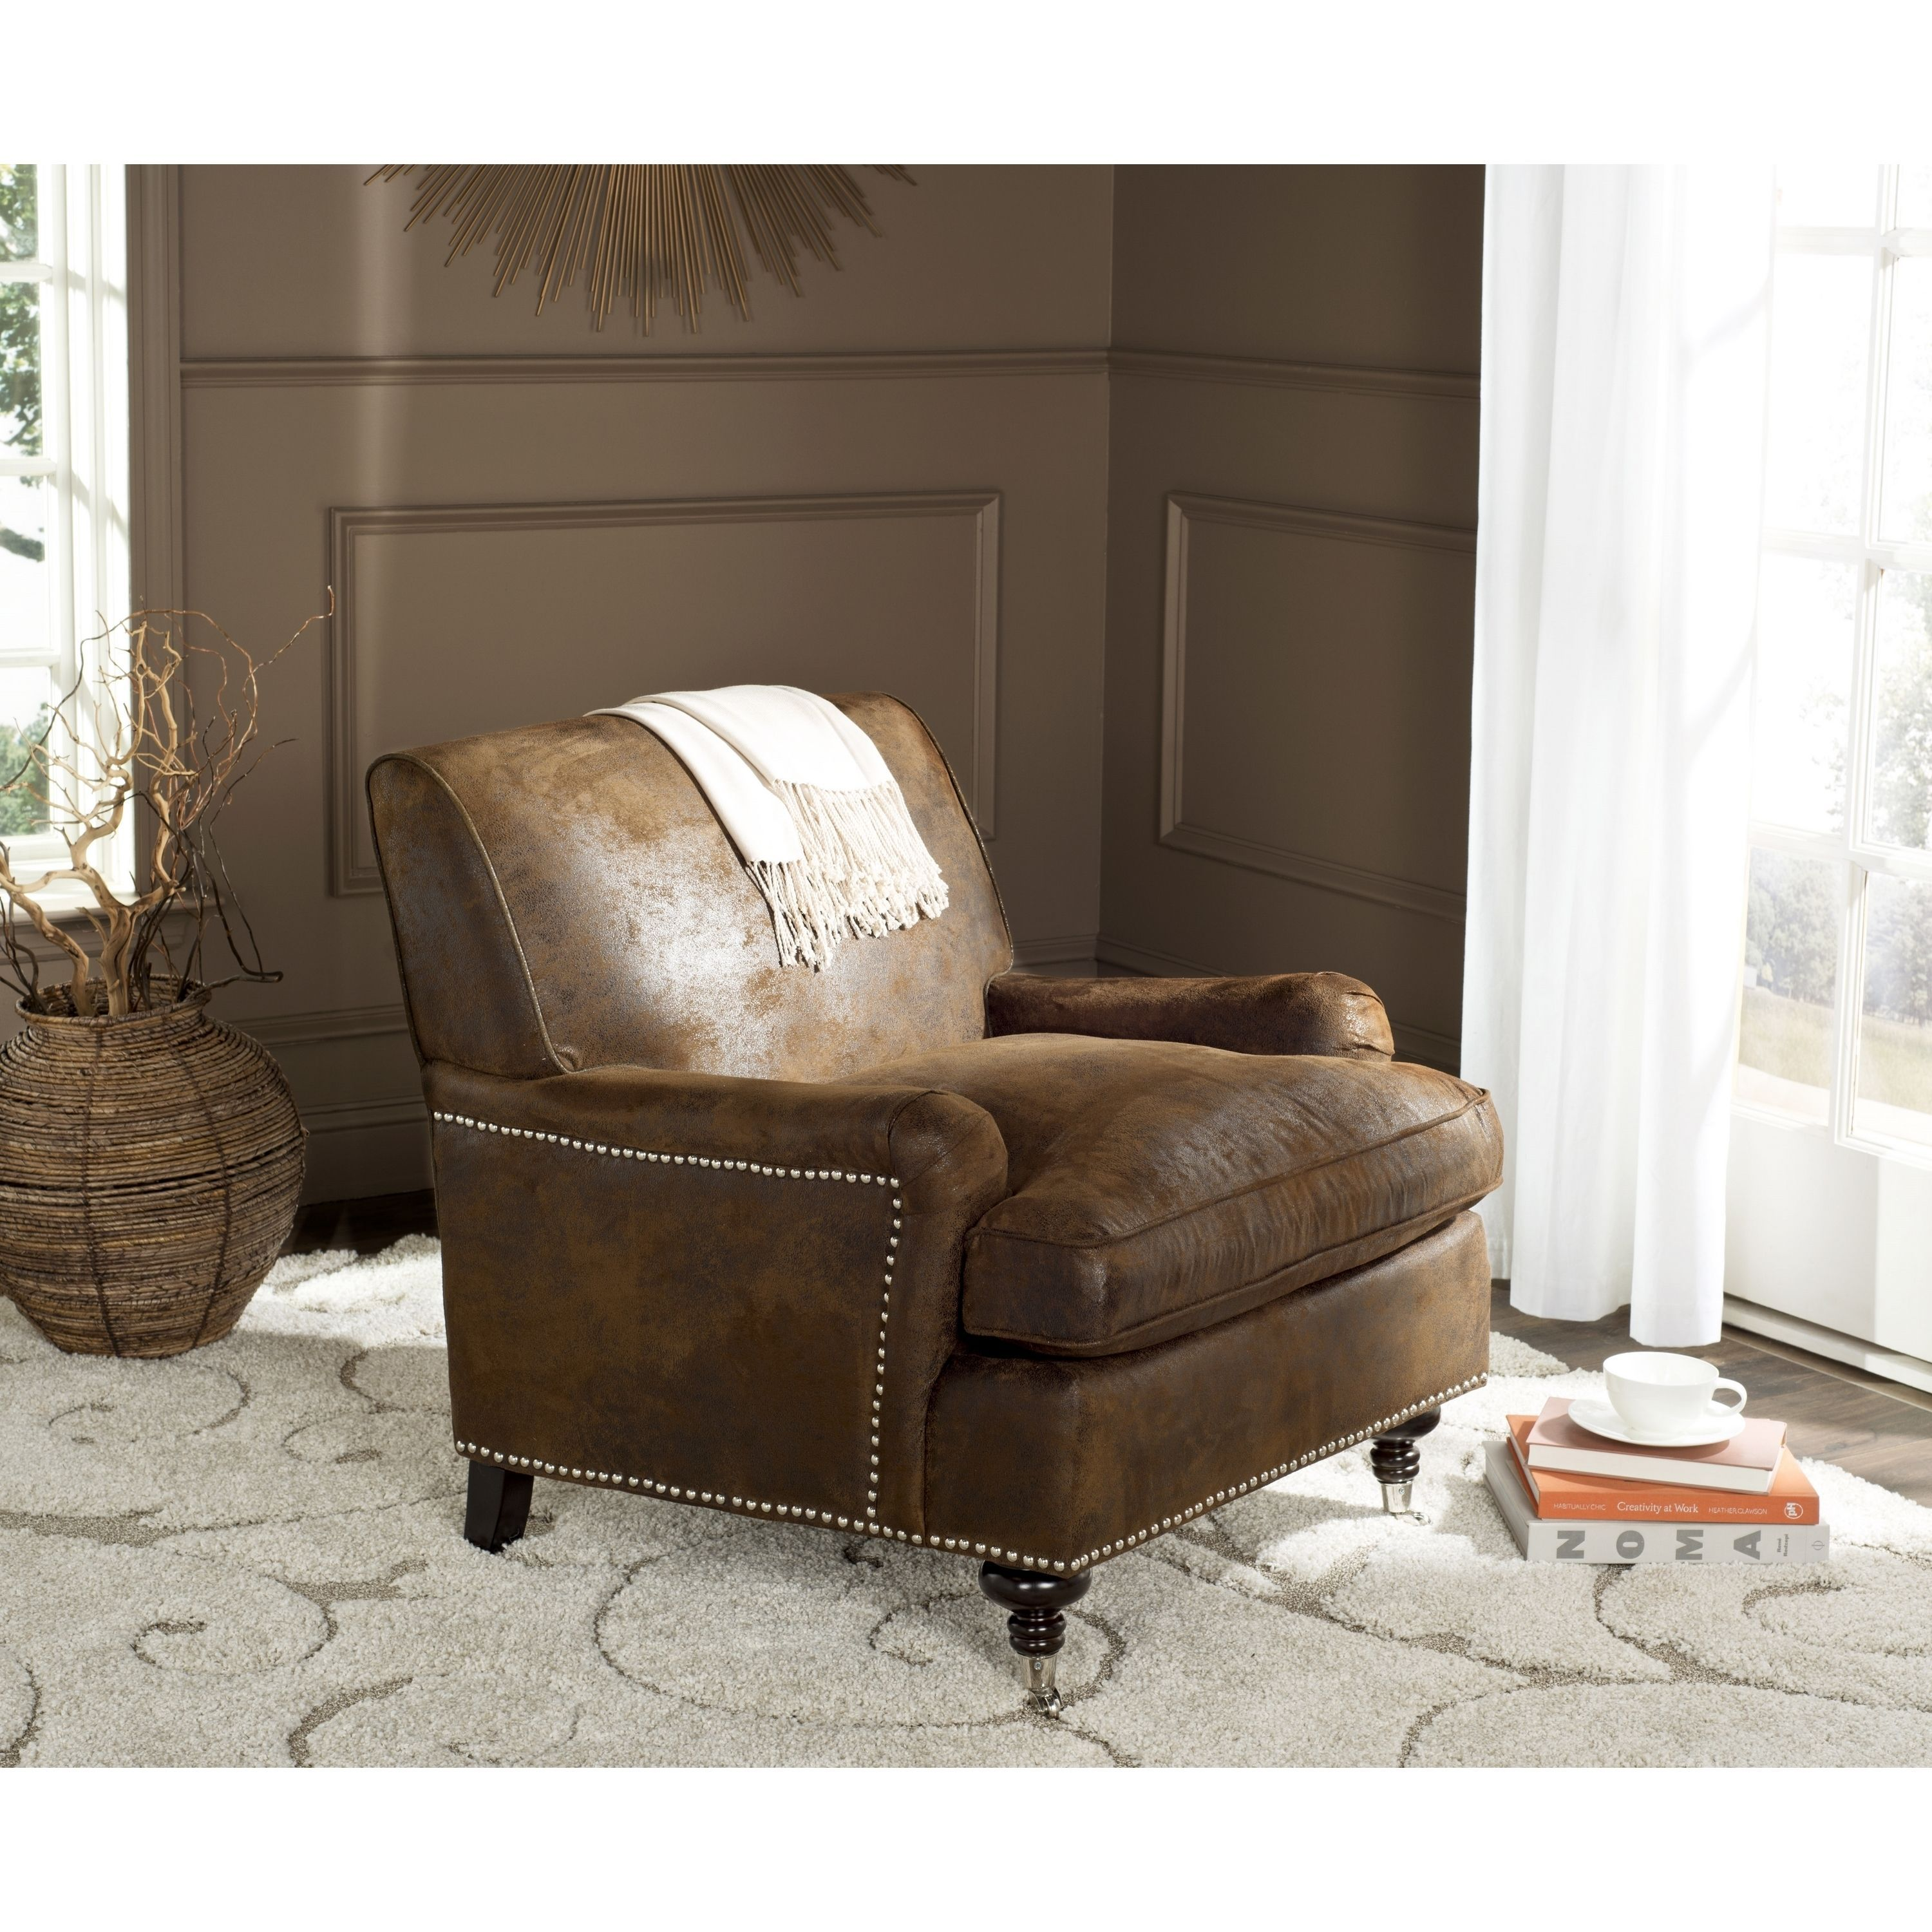 giantex upholstered in sofa fabirc livings item home single furniture room ergonomic from chair accent arm modern chairs gray living